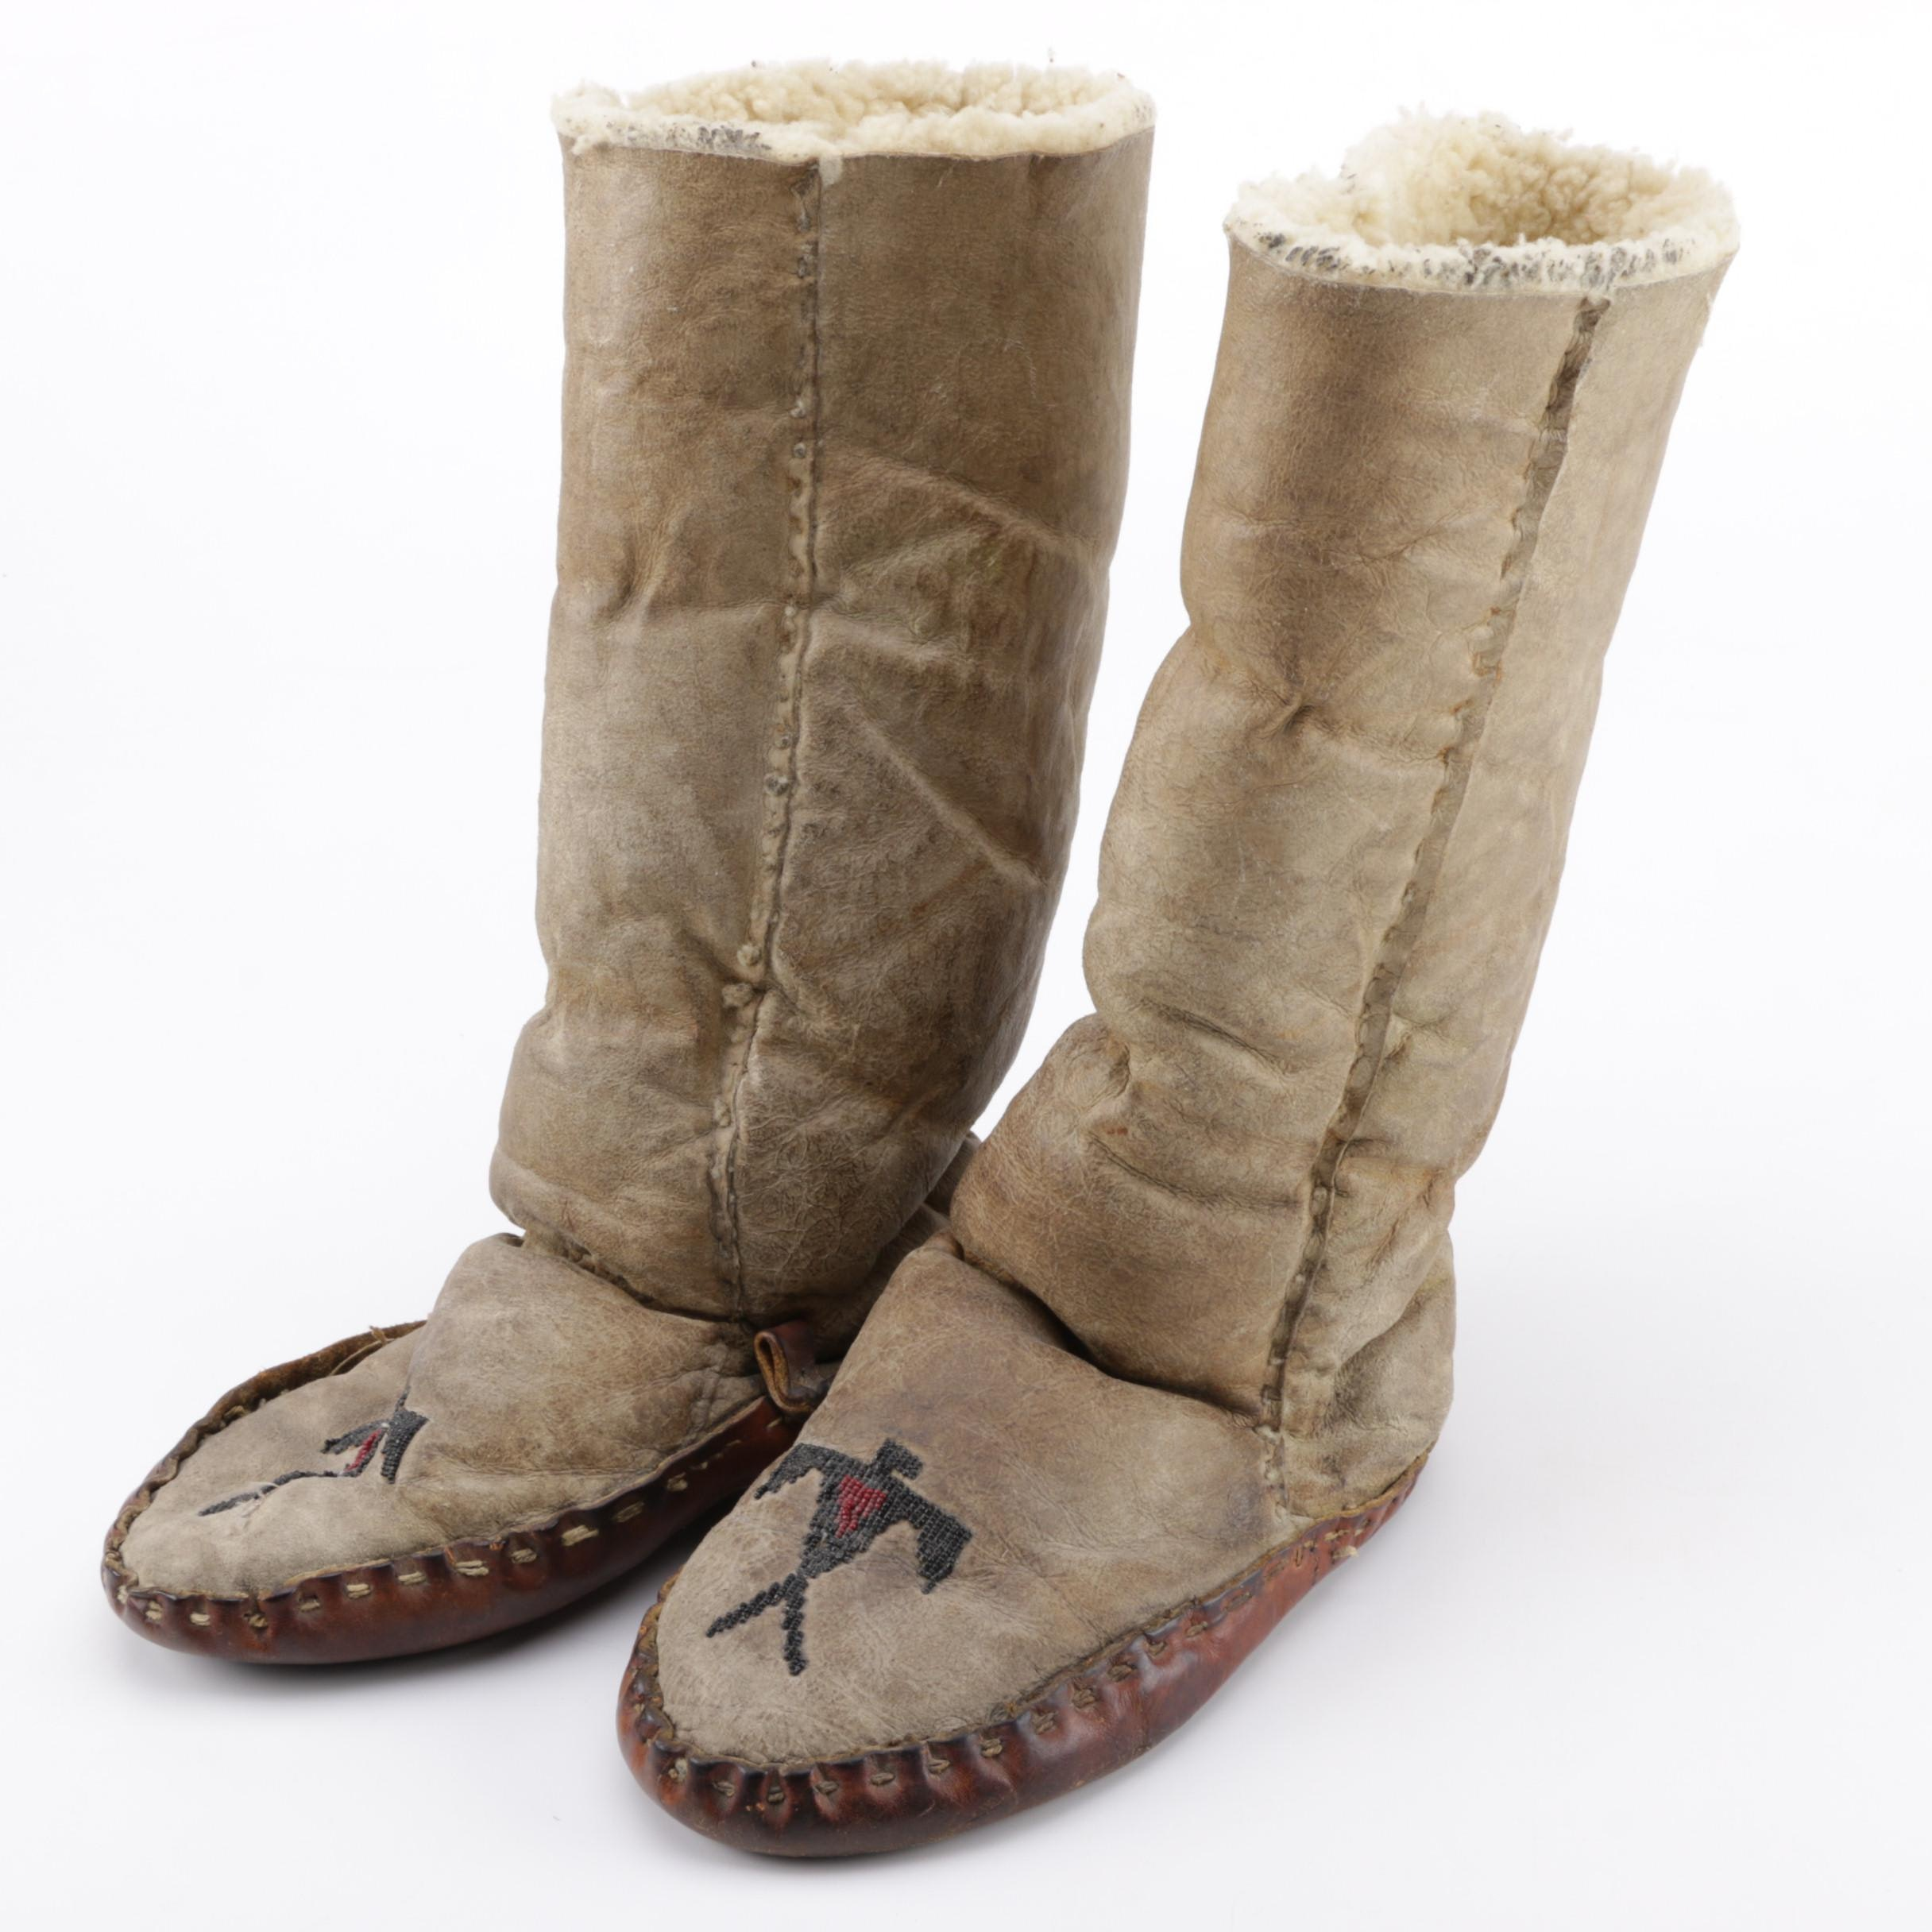 Vintage Native American Style Lined Moccasins